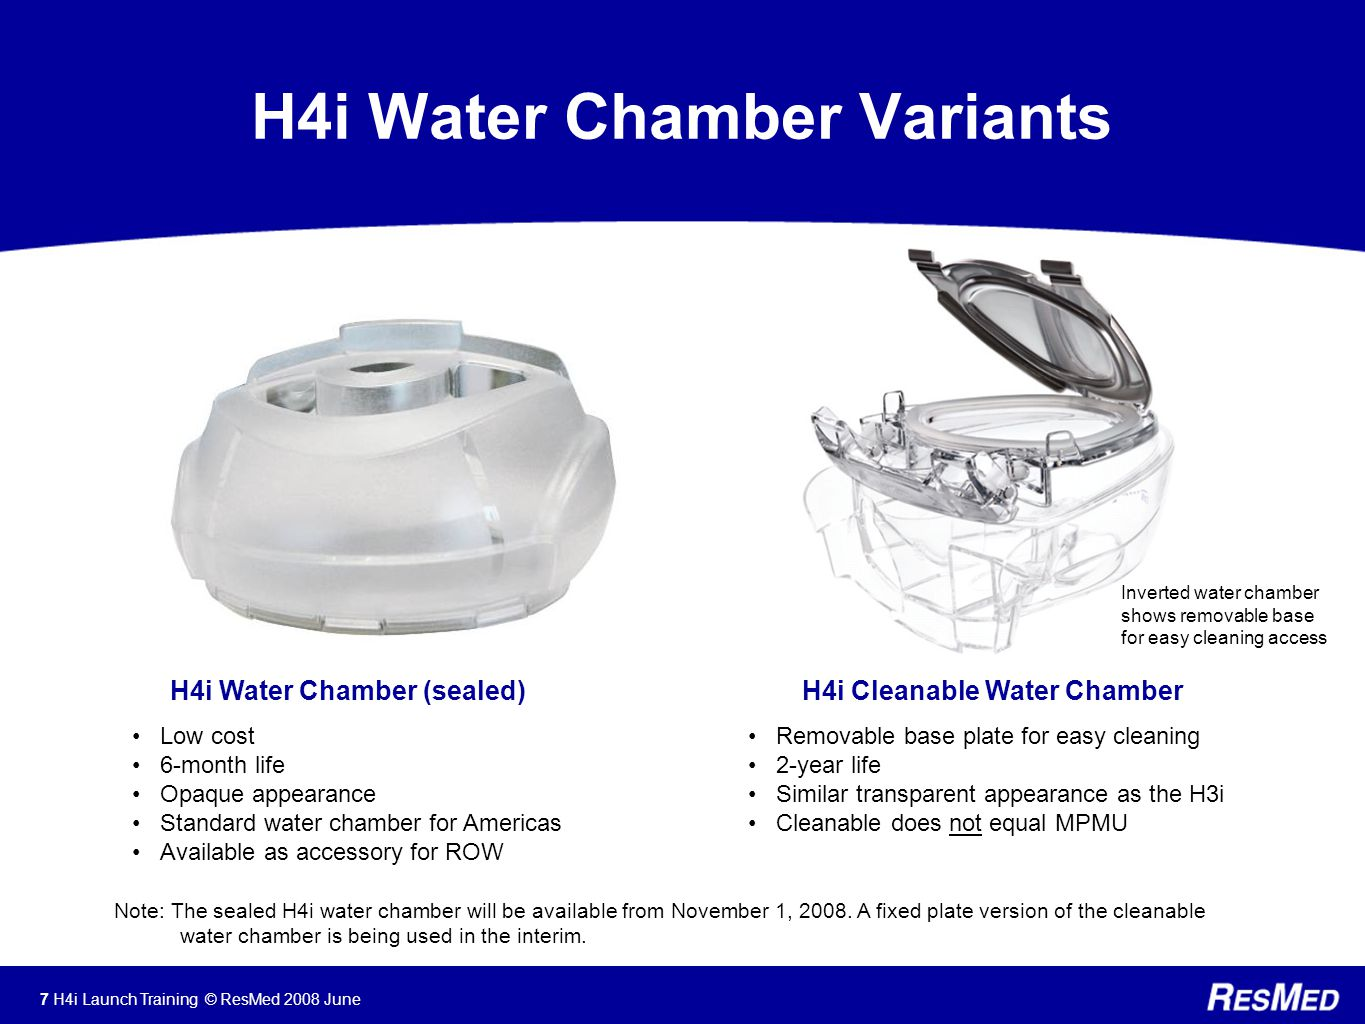 7 H4i Launch Training © ResMed 2008 June H4i Water Chamber Variants H4i Water Chamber (sealed) Low cost 6-month life Opaque appearance Standard water chamber for Americas Available as accessory for ROW H4i Cleanable Water Chamber Removable base plate for easy cleaning 2-year life Similar transparent appearance as the H3i Cleanable does not equal MPMU Note: The sealed H4i water chamber will be available from November 1, 2008.